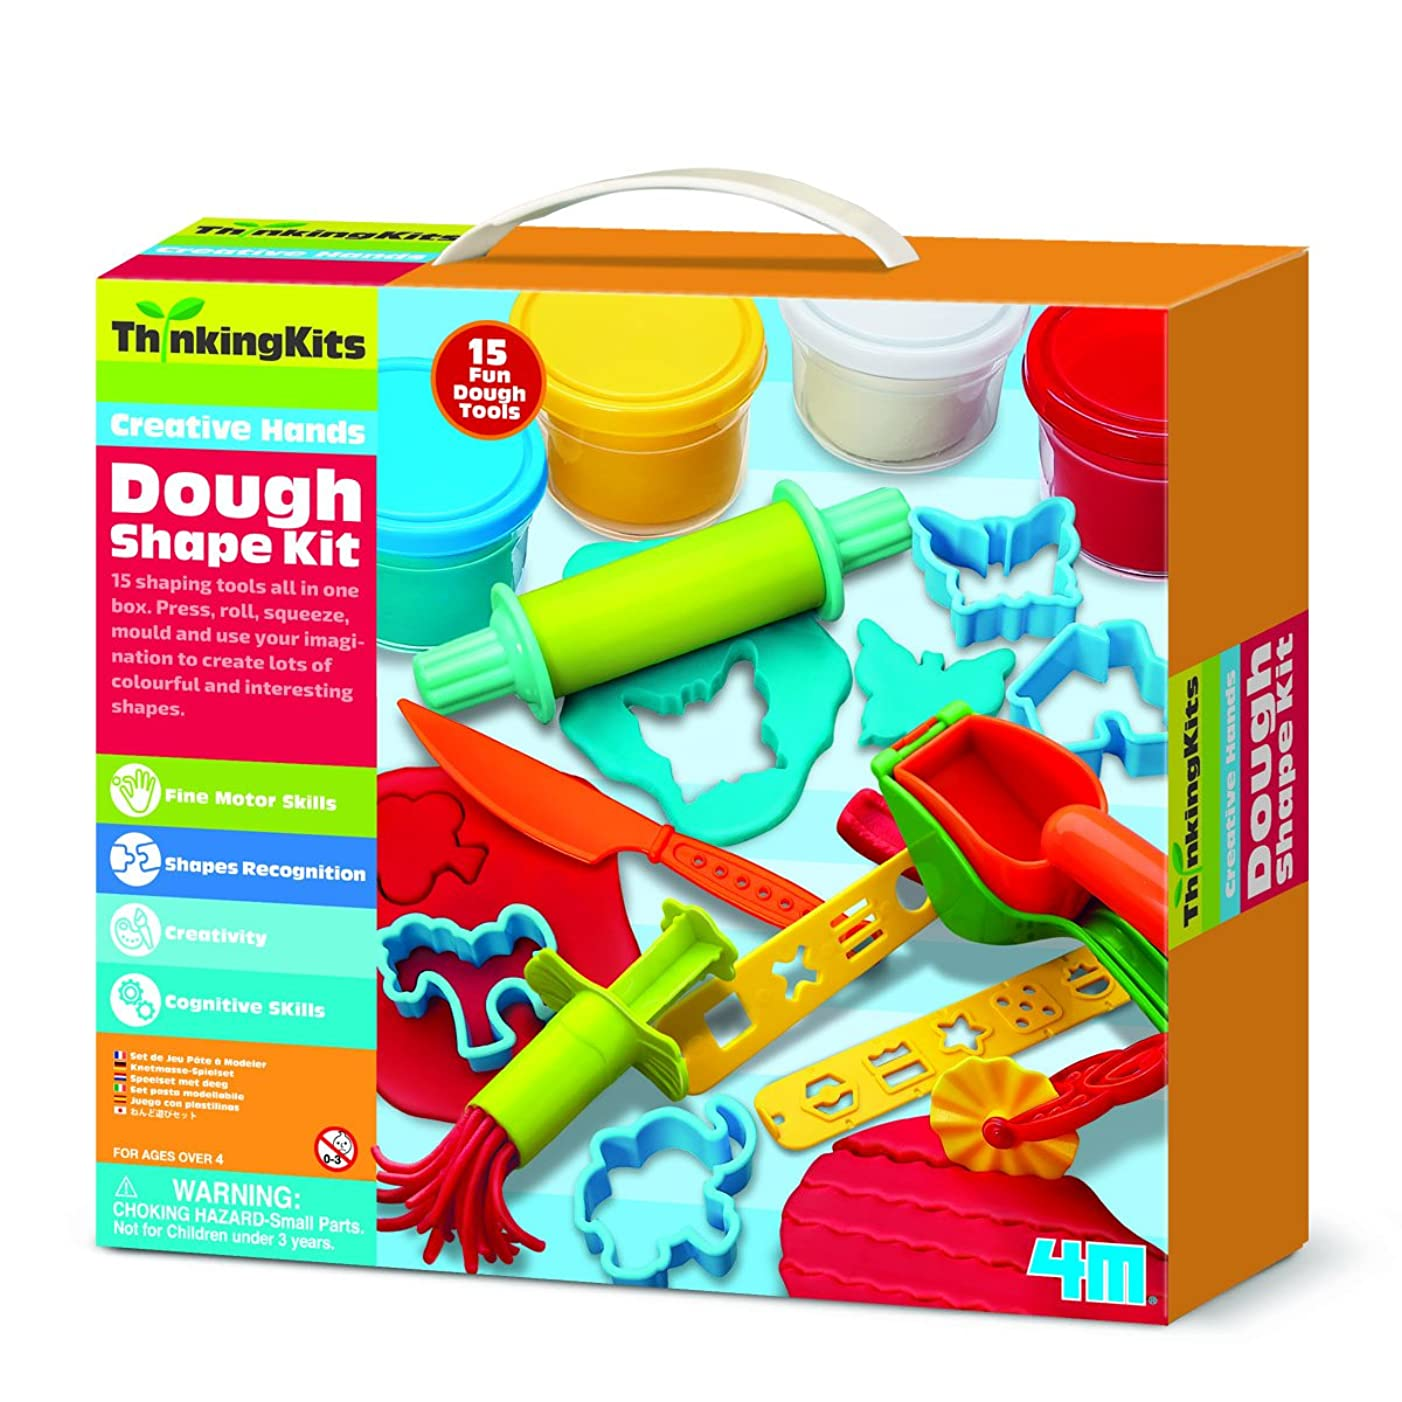 4M Dough Play Set Thinking Kit